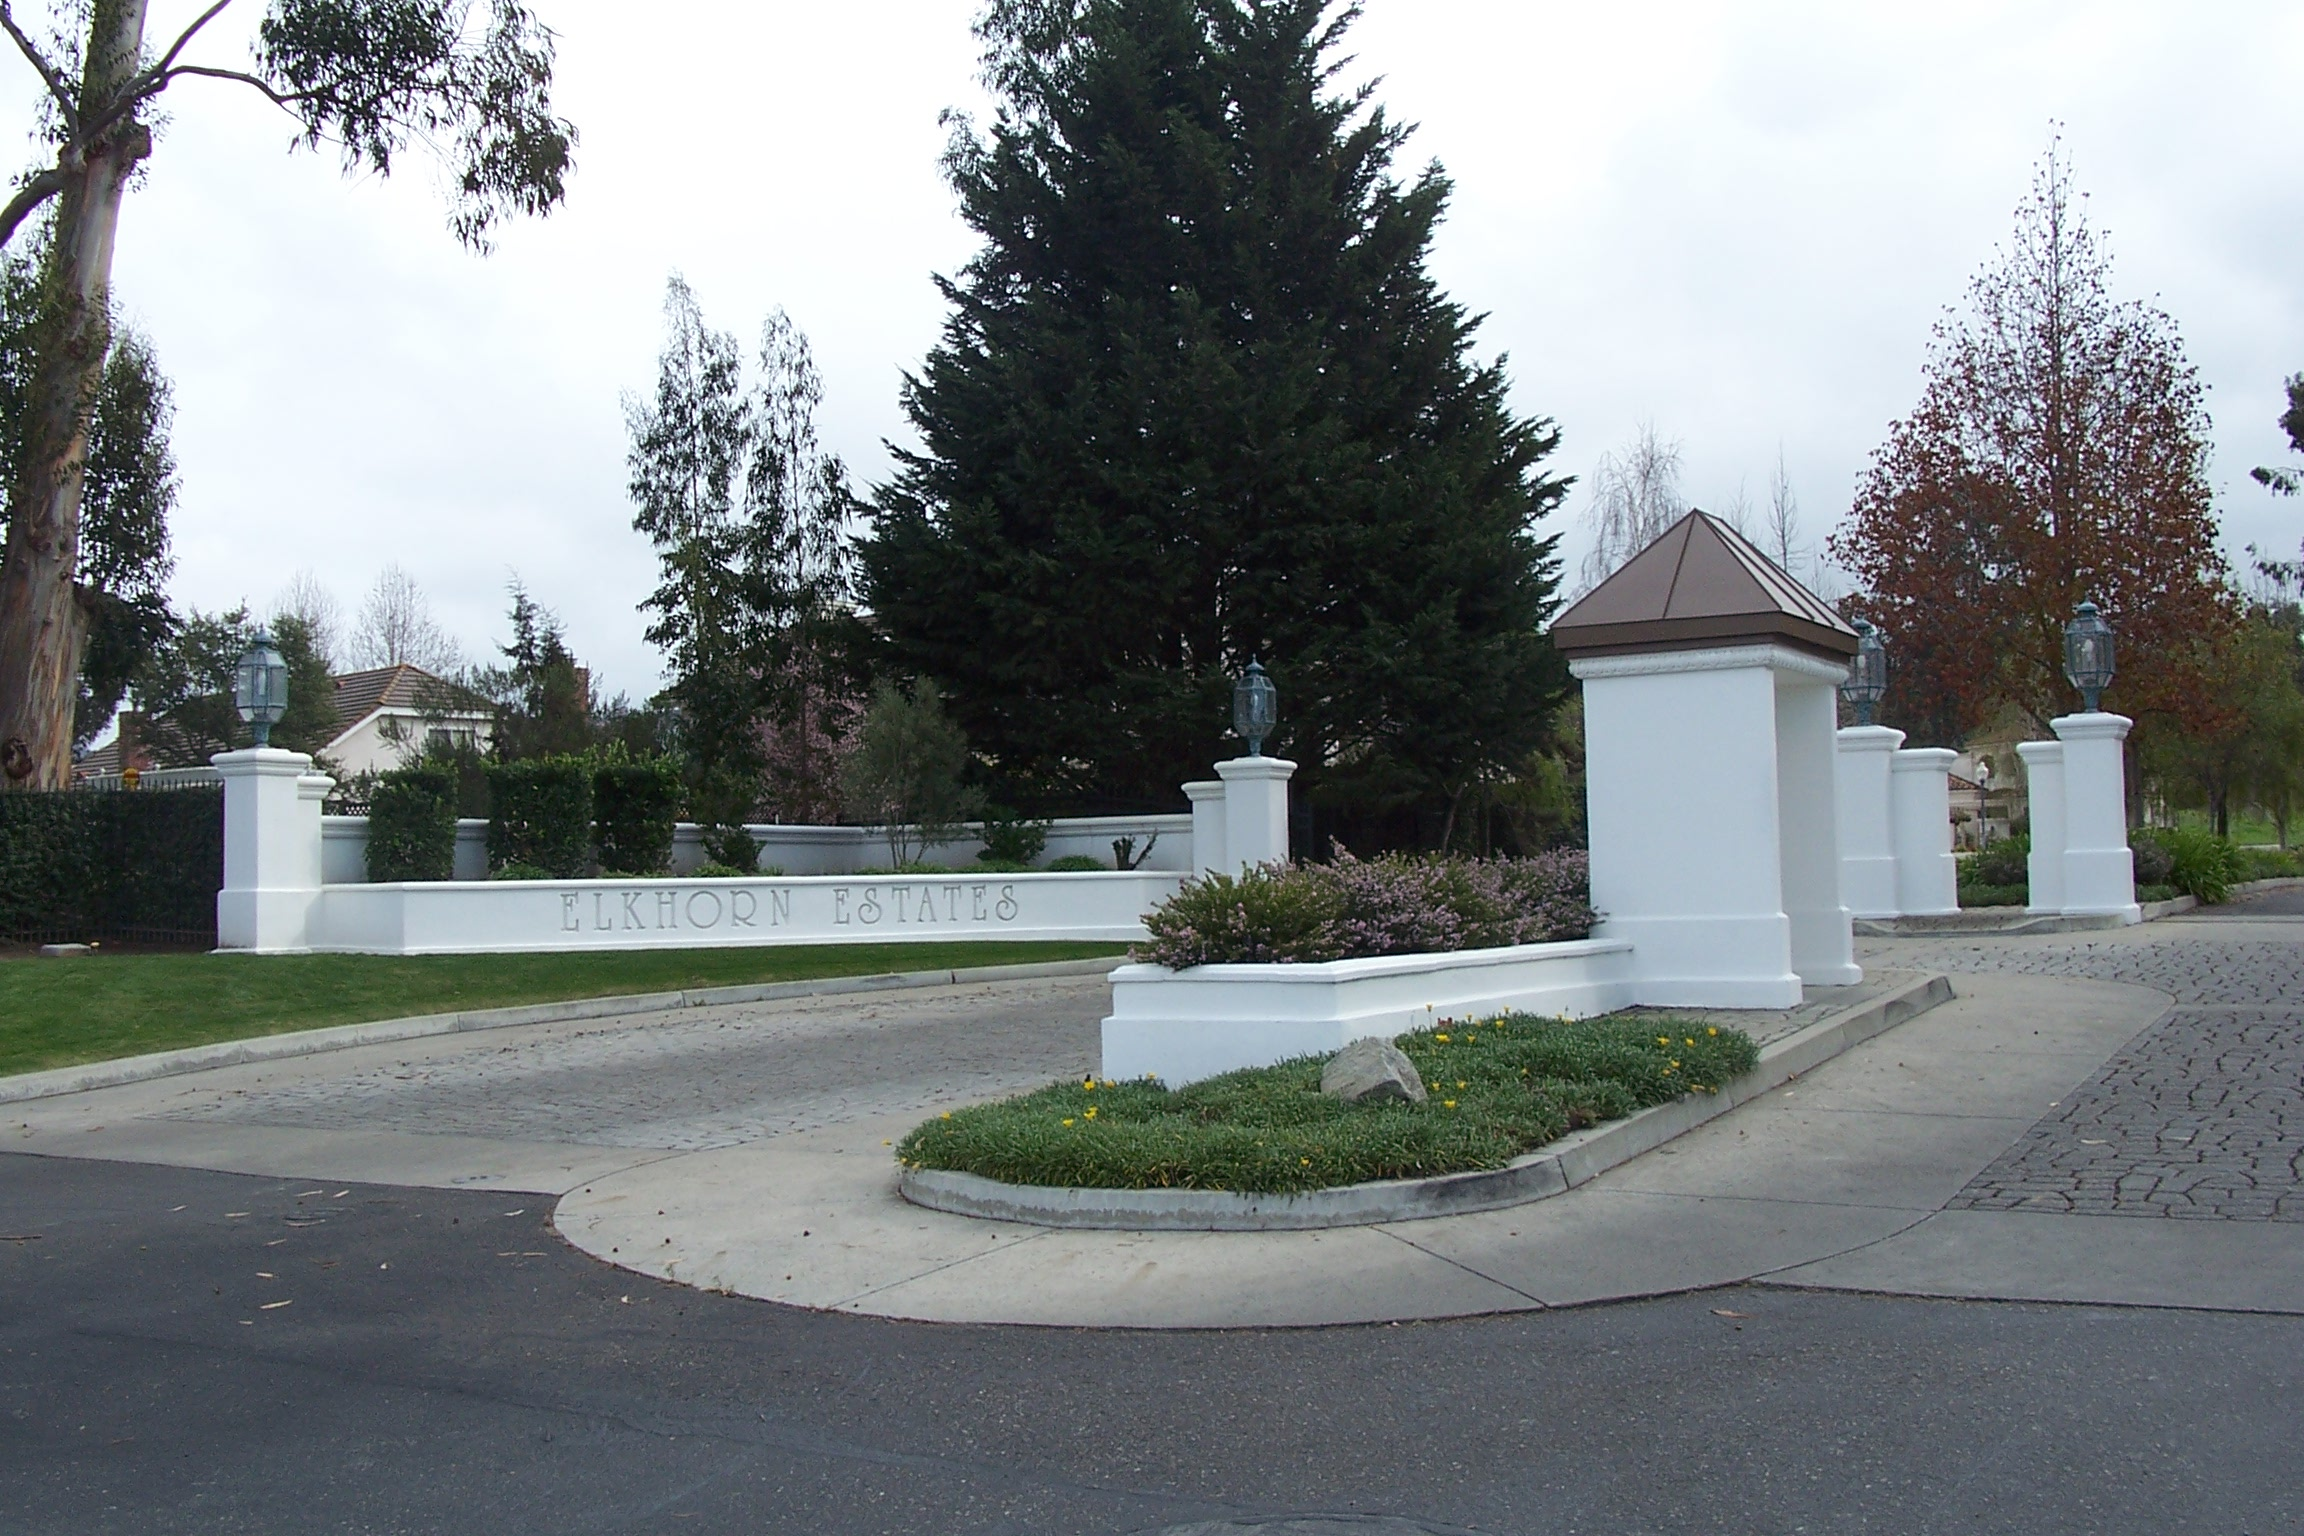 Entrance of Elkhorn Estates in Orcutt, CA